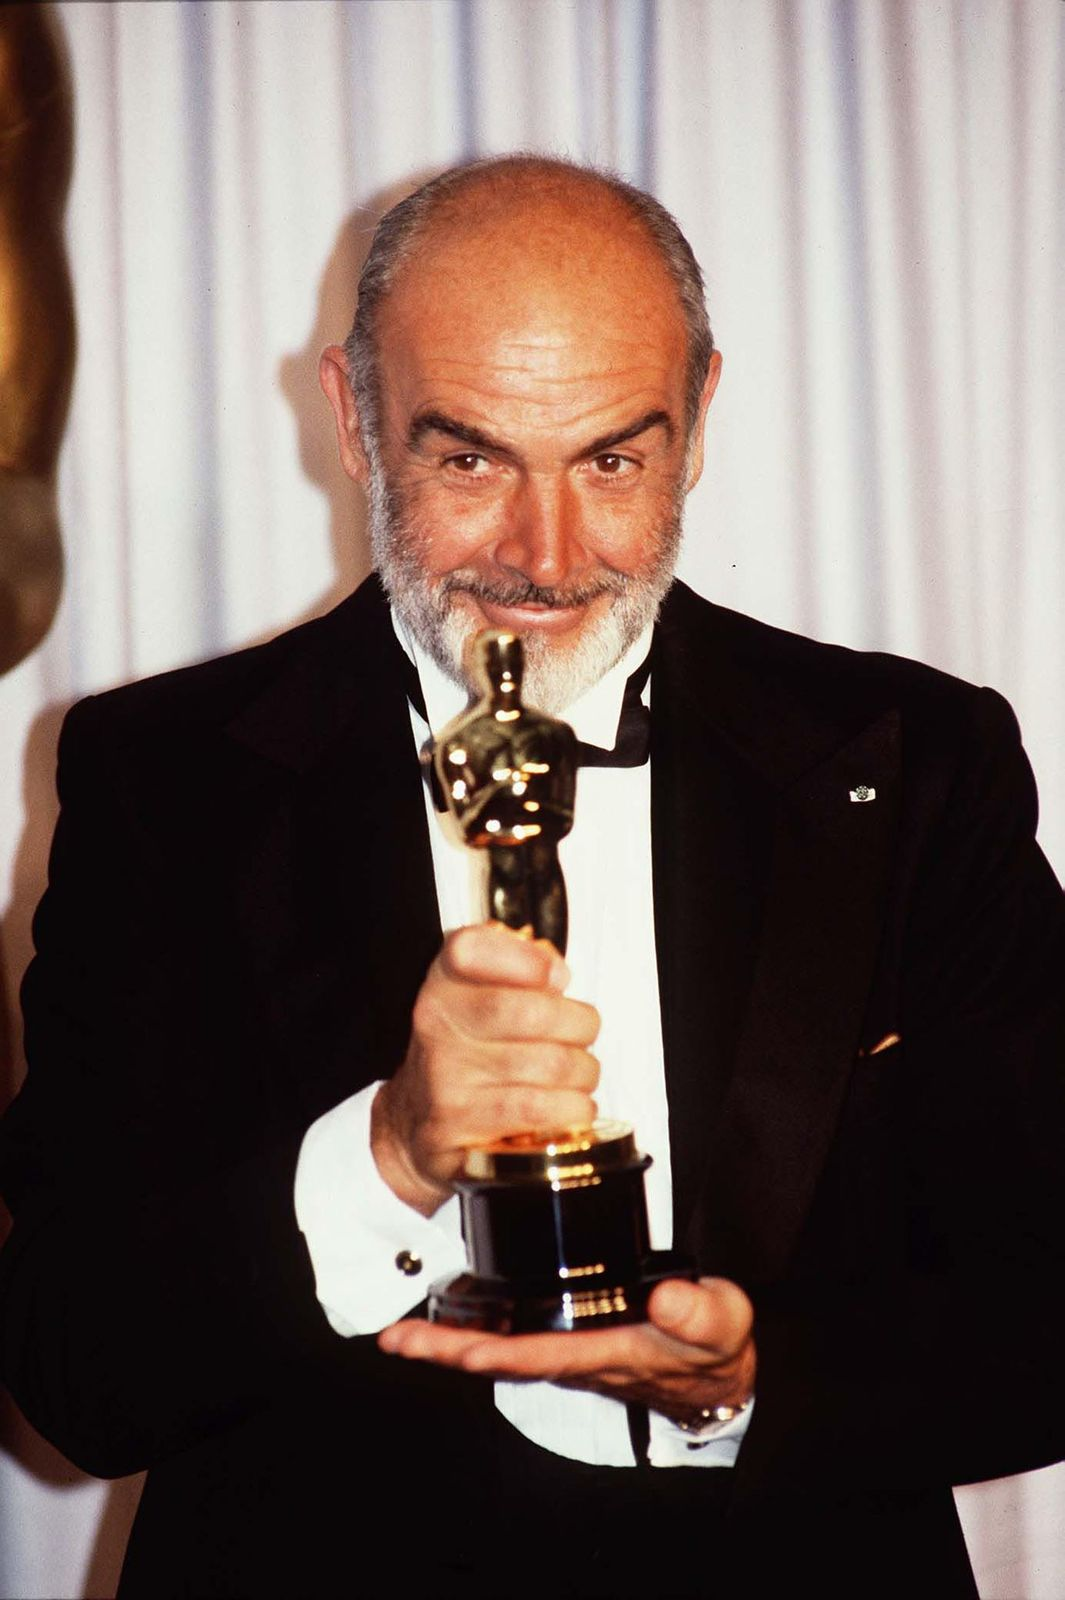 Sean Connery at an Oscar AwardCeremony onApril 13, 1988| Photo: Photoshot/Getty Images